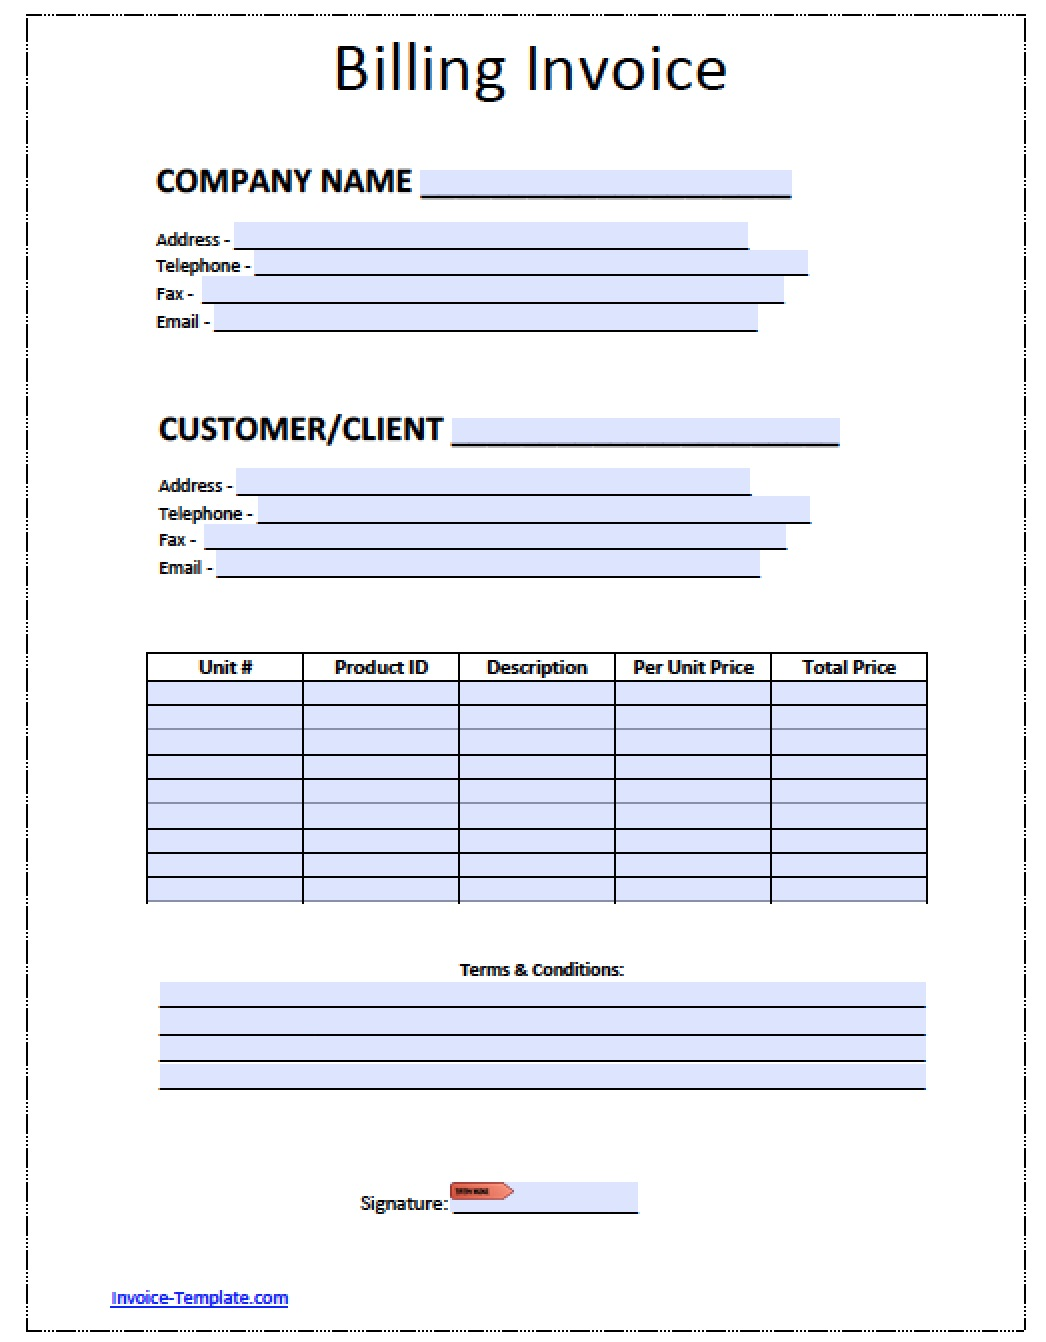 Shopdesignsus  Inspiring Billing Invoice Invoices Faq U Cloudflare Support Billing  With Luxury Free Billing Invoice Template  Excel  Pdf  Word Doc  Billing With Beauteous Zoho Invoice Login Also Contractor Invoices In Addition Create An Invoice In Word And Free Word Invoice Template As Well As Payment Invoice Additionally How To Find Dealer Invoice Price From Happytomco With Shopdesignsus  Luxury Billing Invoice Invoices Faq U Cloudflare Support Billing  With Beauteous Free Billing Invoice Template  Excel  Pdf  Word Doc  Billing And Inspiring Zoho Invoice Login Also Contractor Invoices In Addition Create An Invoice In Word From Happytomco